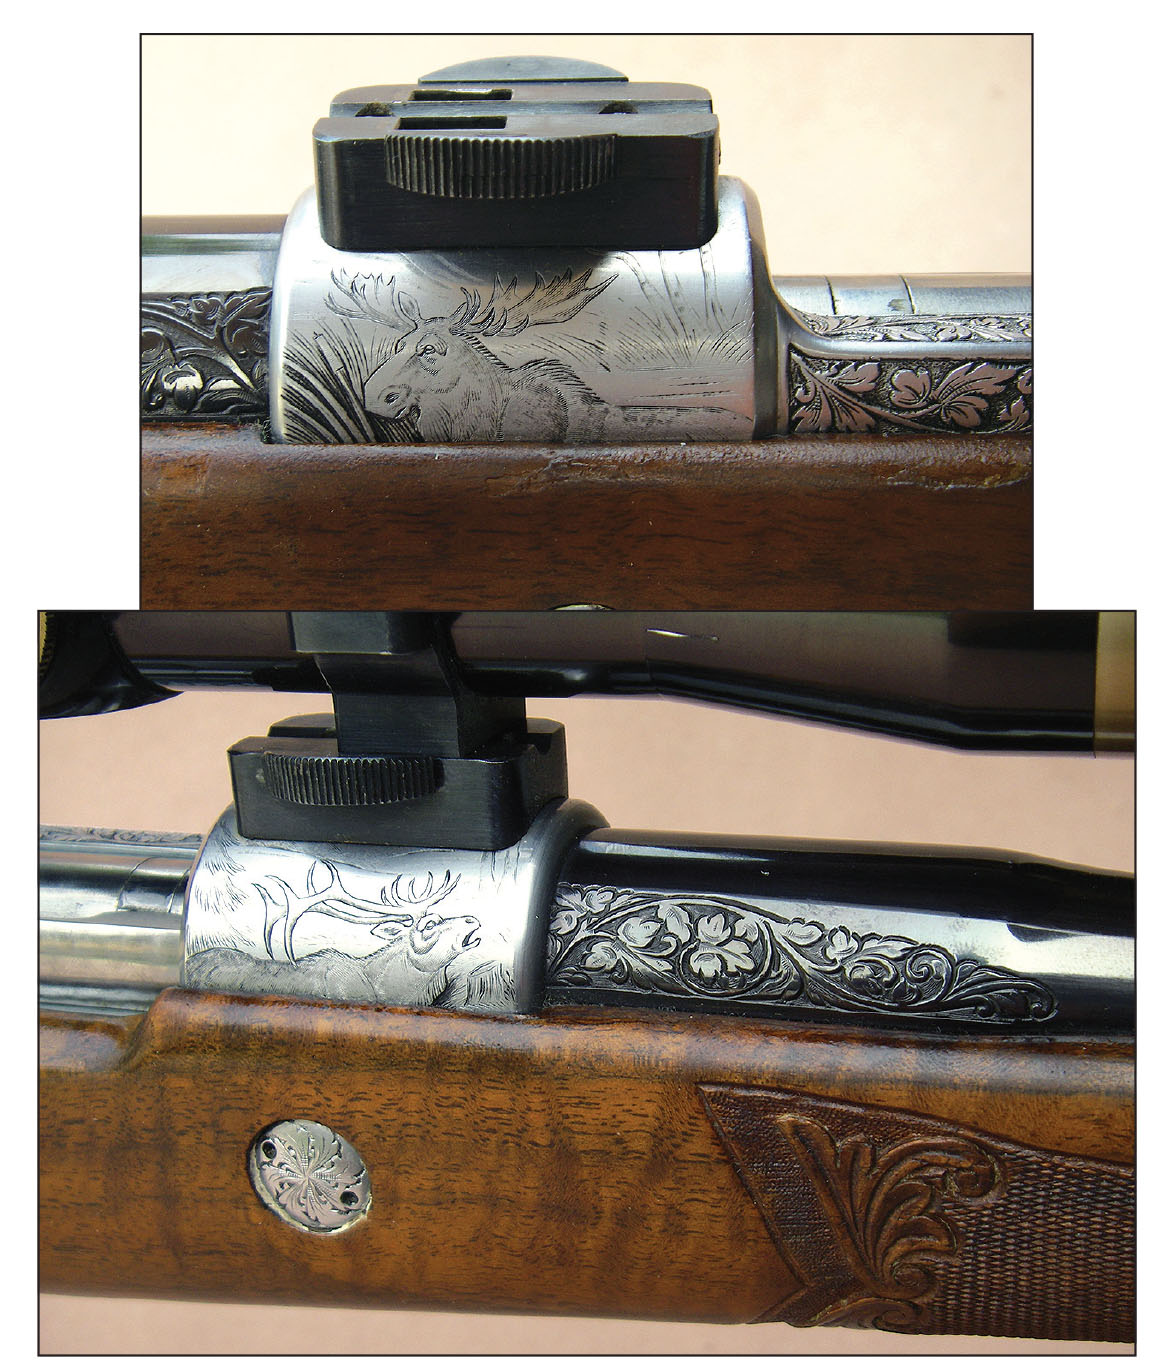 Olympian Grade High-Power rifles featured French Gray receivers that were scroll engraved, and many of these rifles were signed by the engraver.